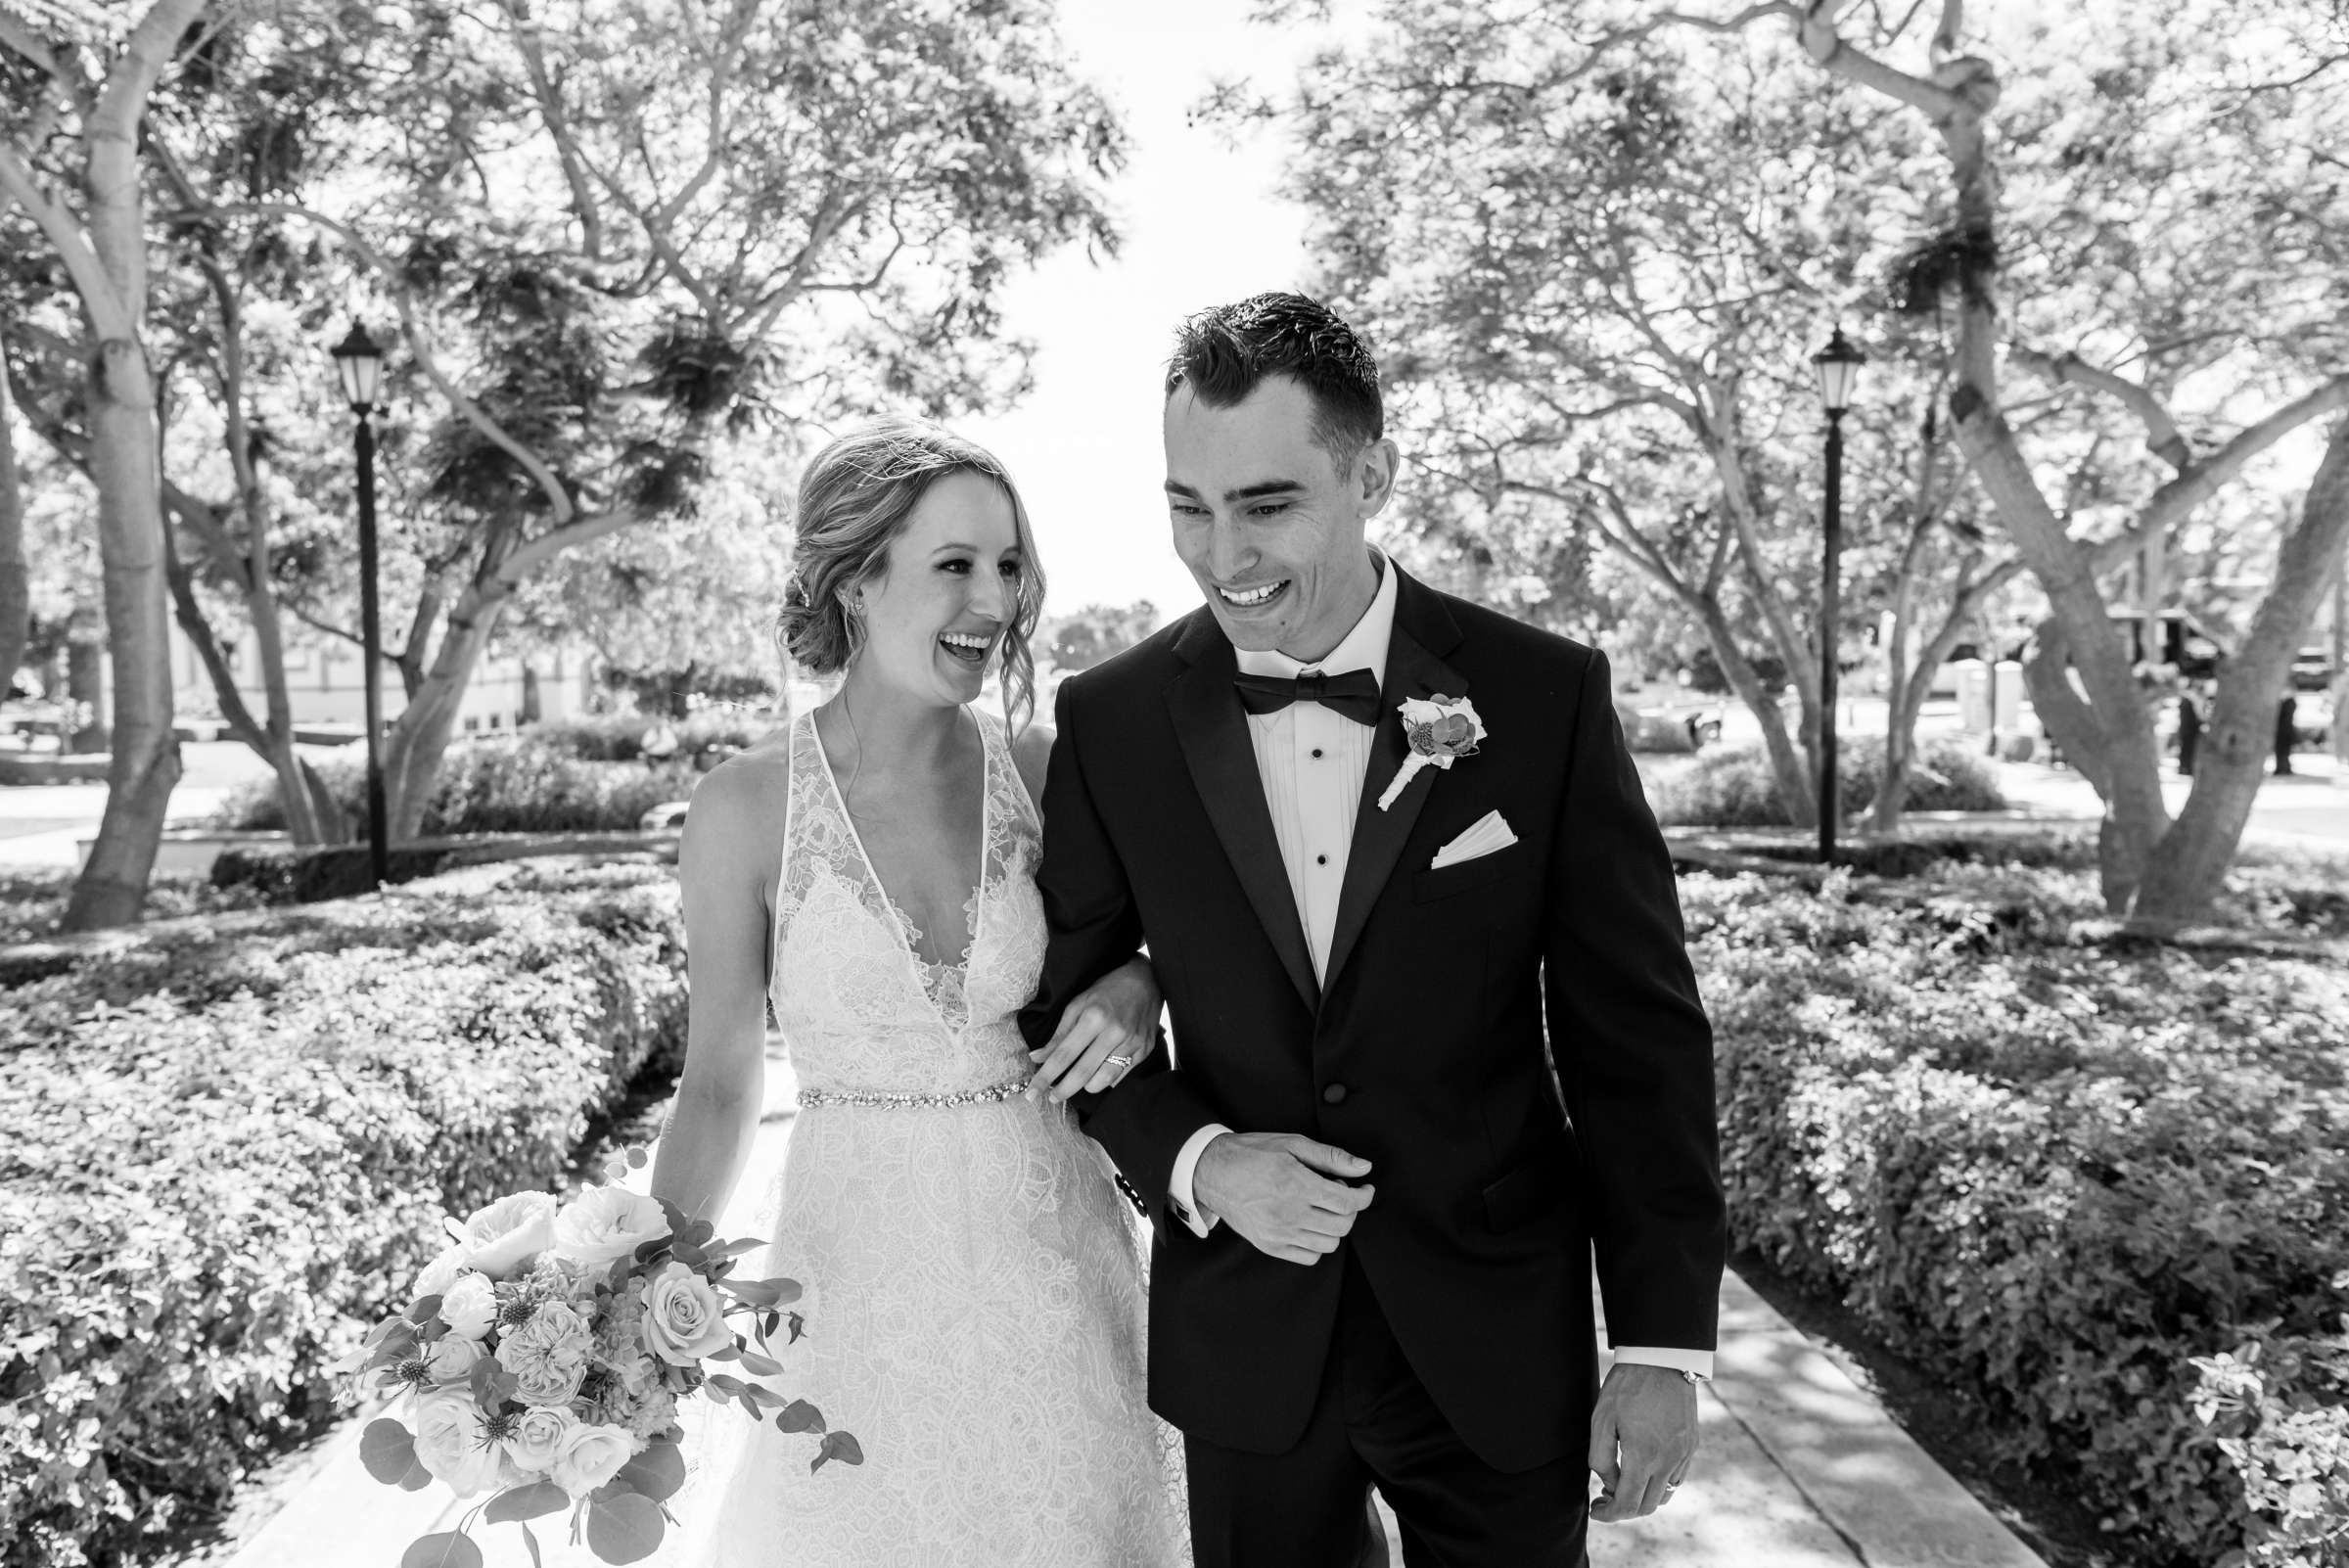 The Prado Wedding coordinated by Bliss Events, Sara and Marvin Wedding Photo #559562 by True Photography